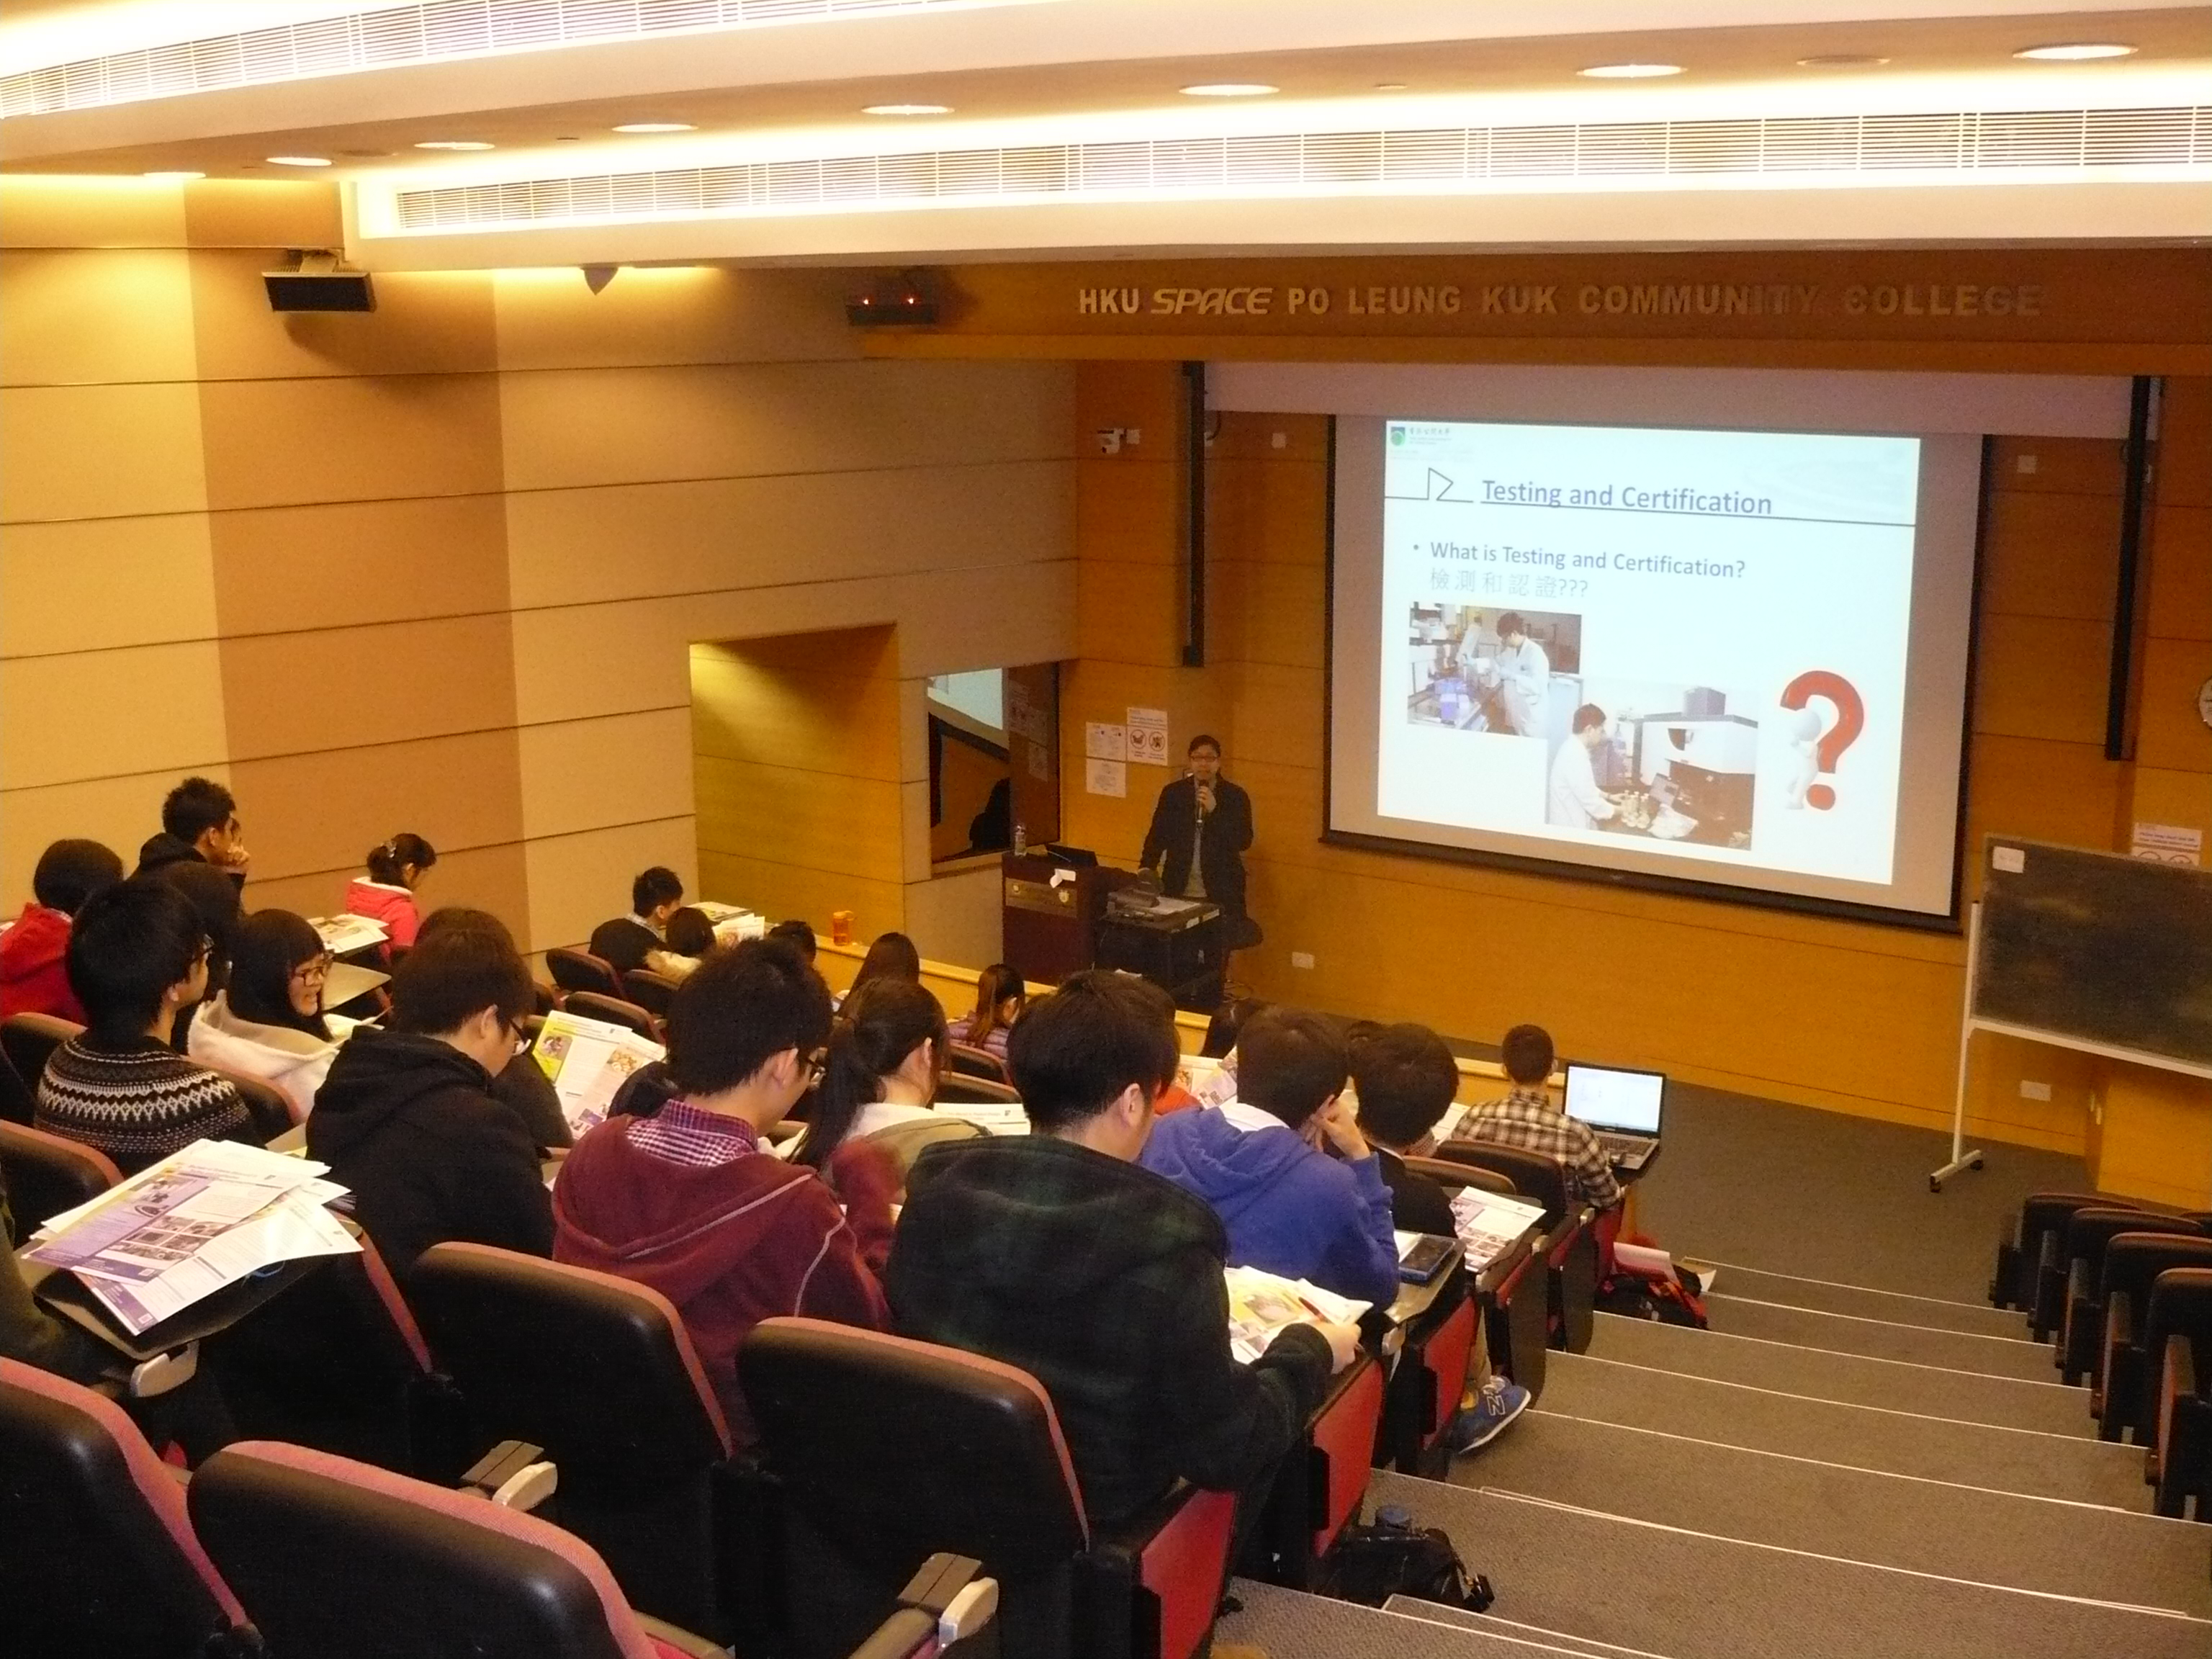 Seminar on the BSc in Testing Science/Testing and Certification Programmes (OUHK) - Photo - 5